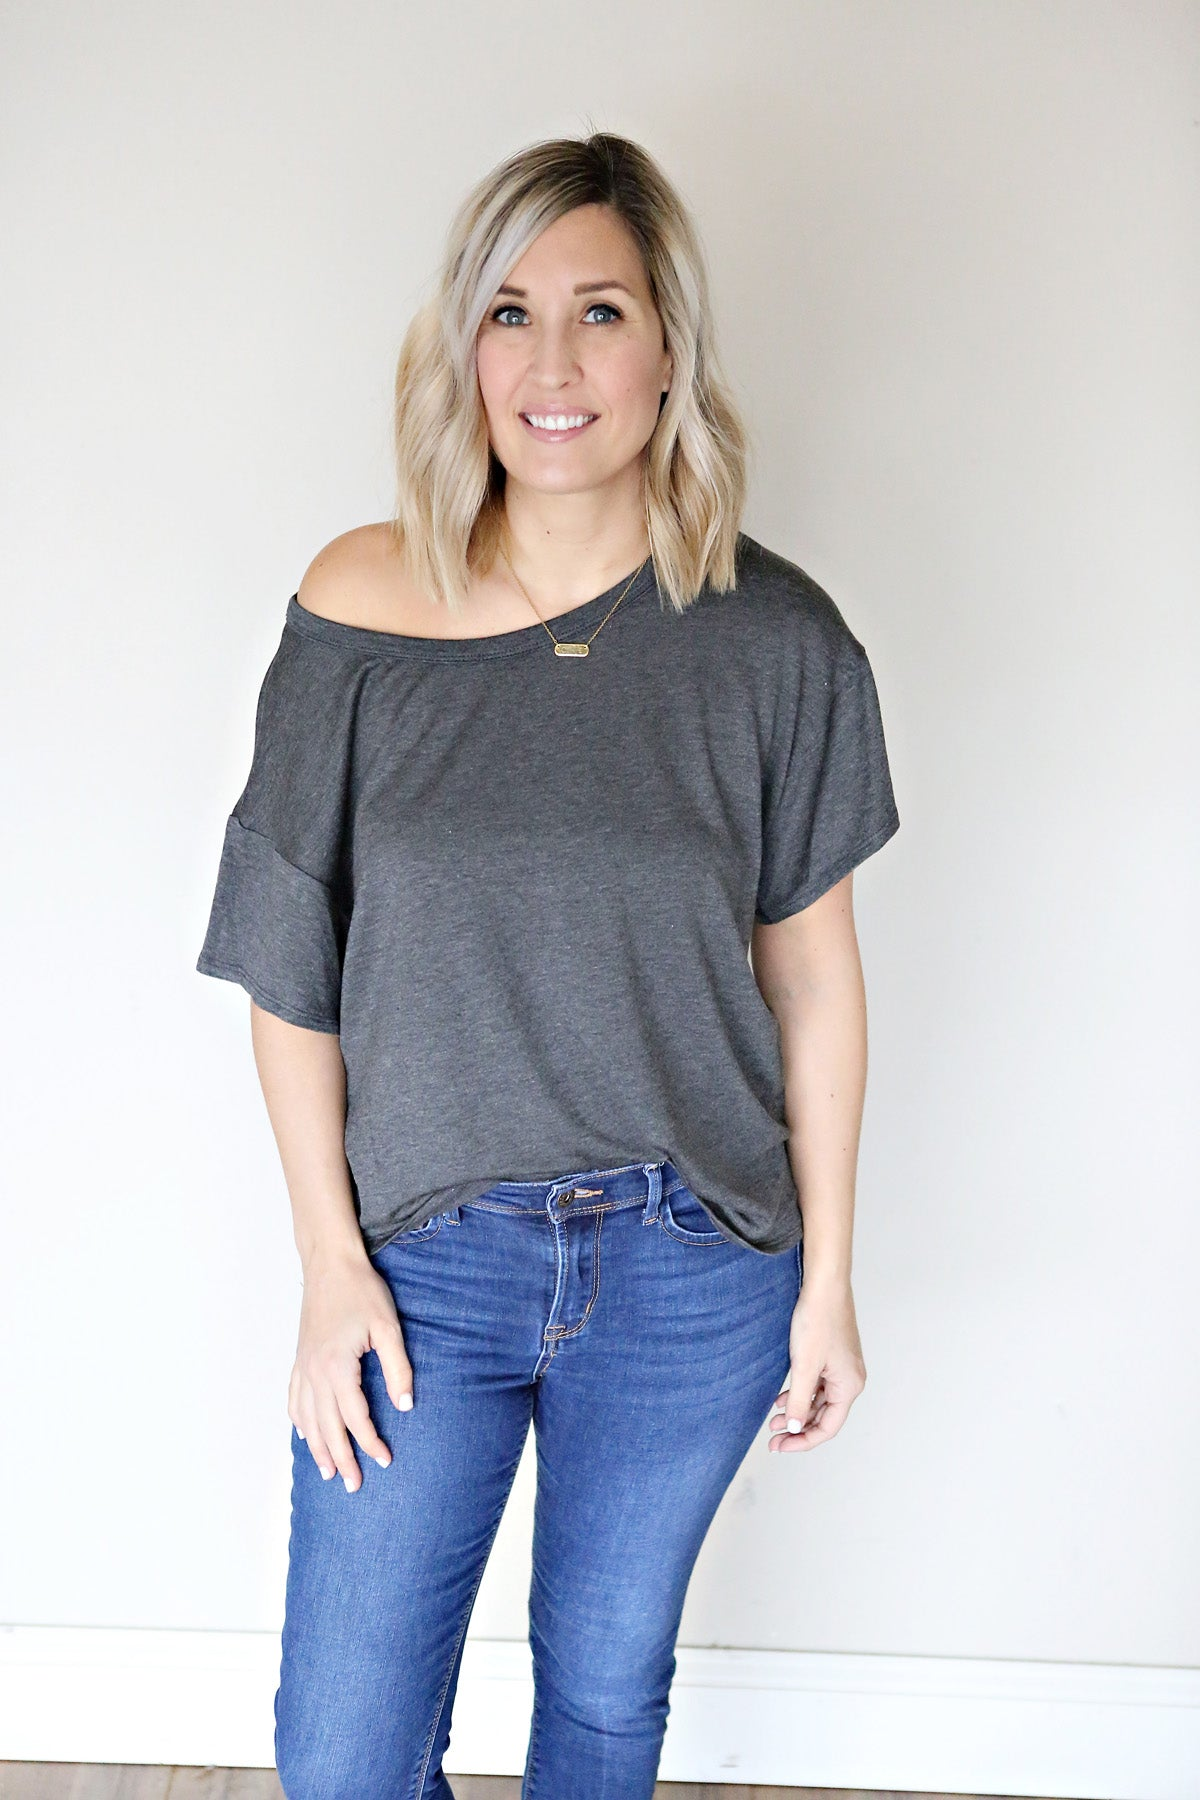 Elizabeth Top - Charcoal - Gray Monroe